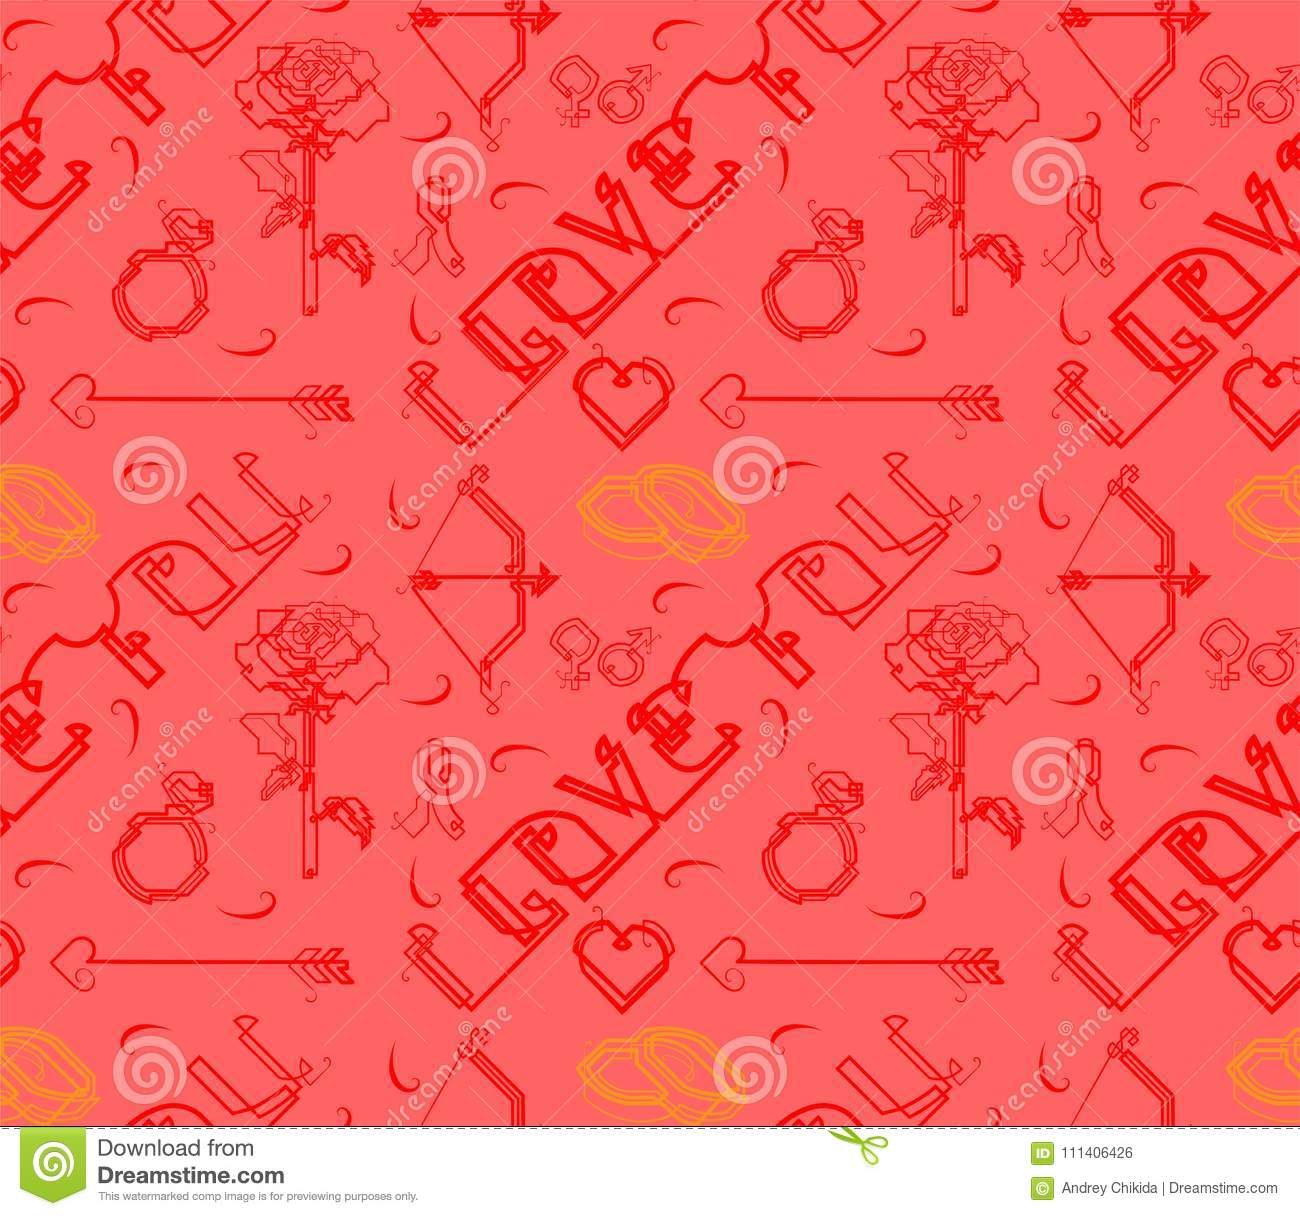 Background The Flowers Heart The Arrow Of Cupid By The Graphical